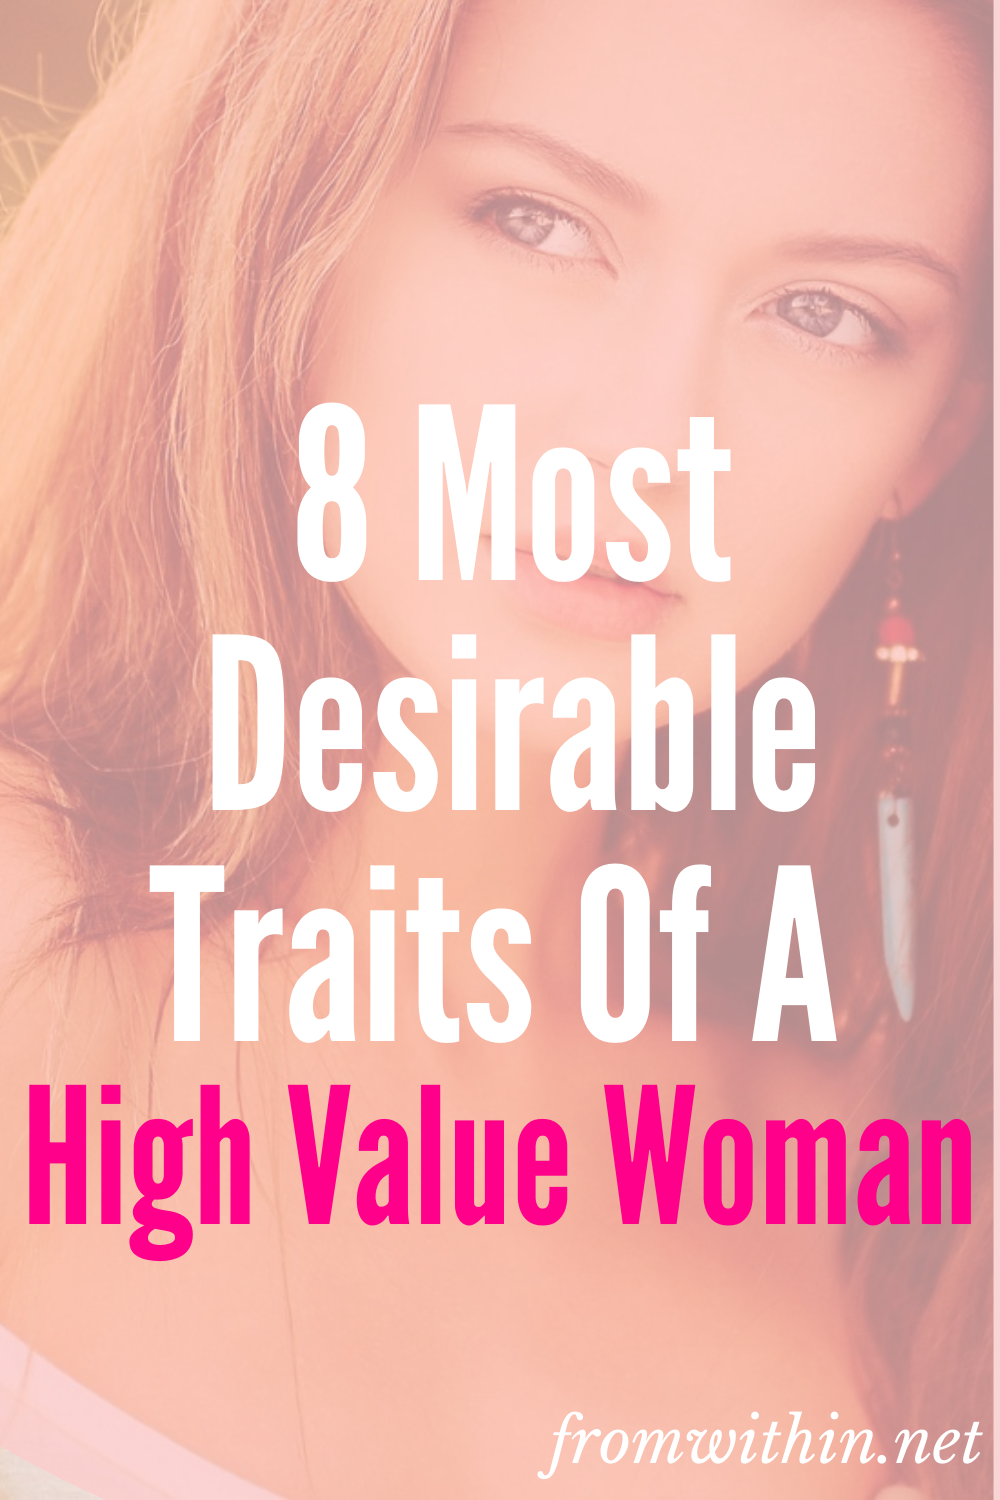 8 Most Desirable Traits Of A High Value Woman